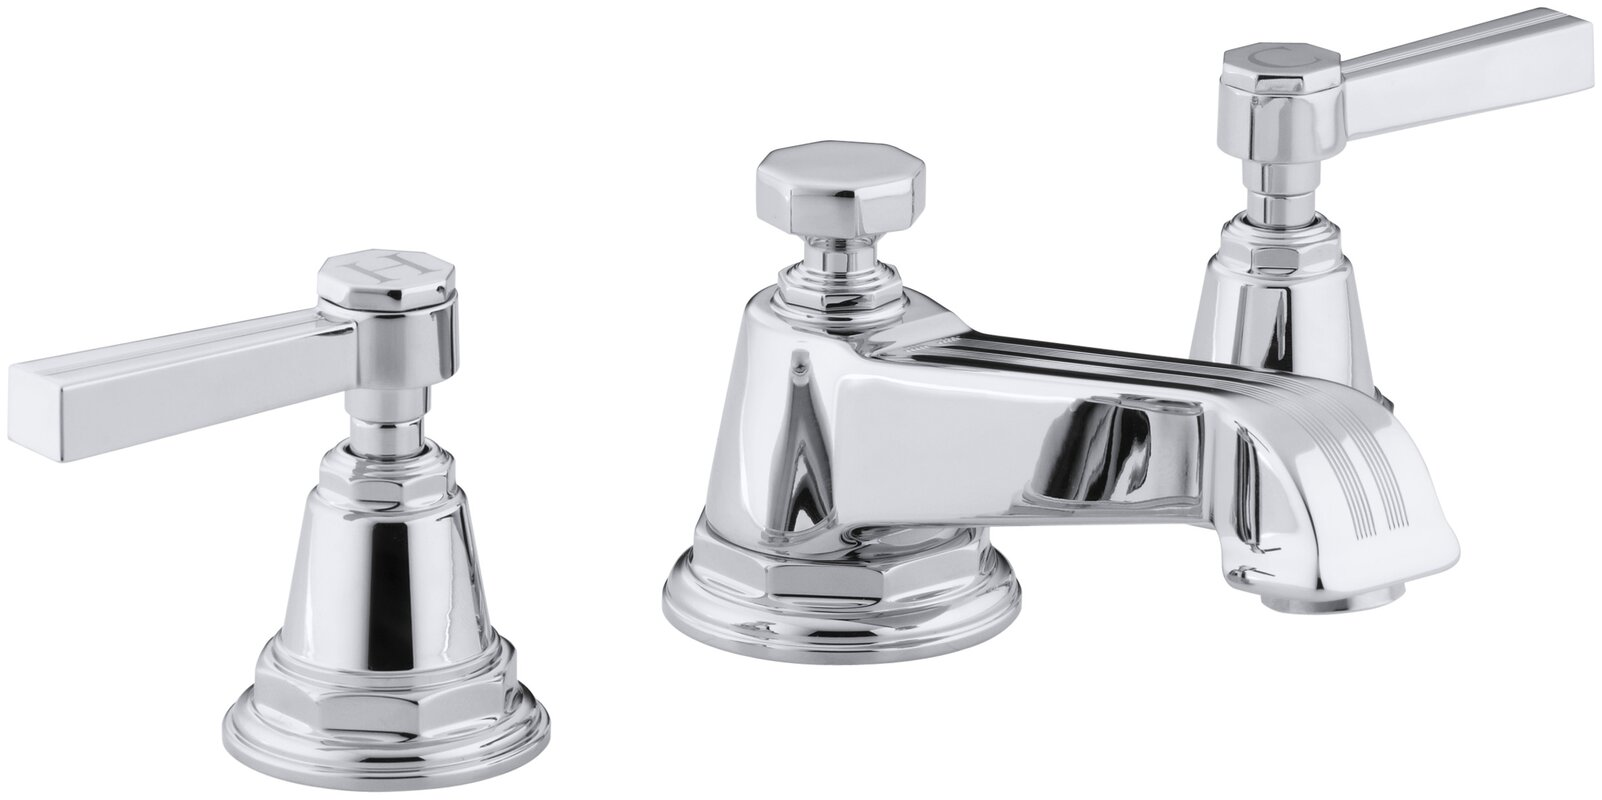 Signature Hardware Victorian Widespread Bathroom Faucet: Kohler Pinstripe Widespread Bathroom Faucet With Drain